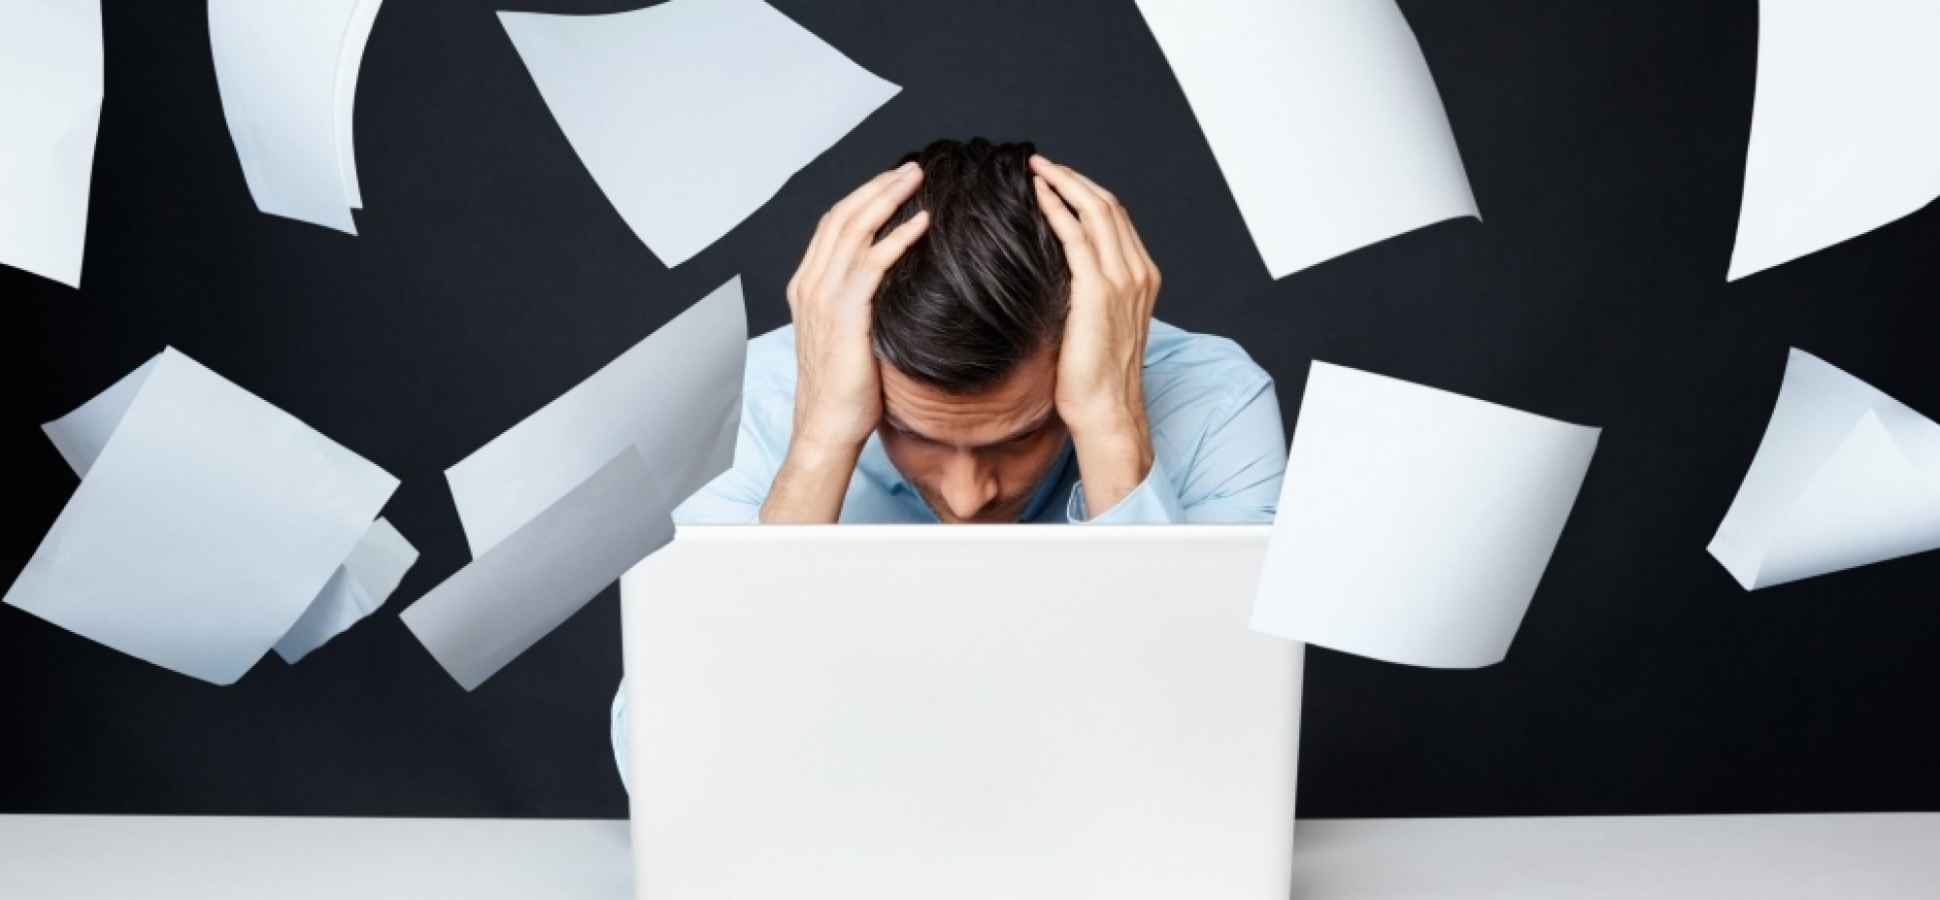 I Opted Out of Email. Here's Why You Should, Too